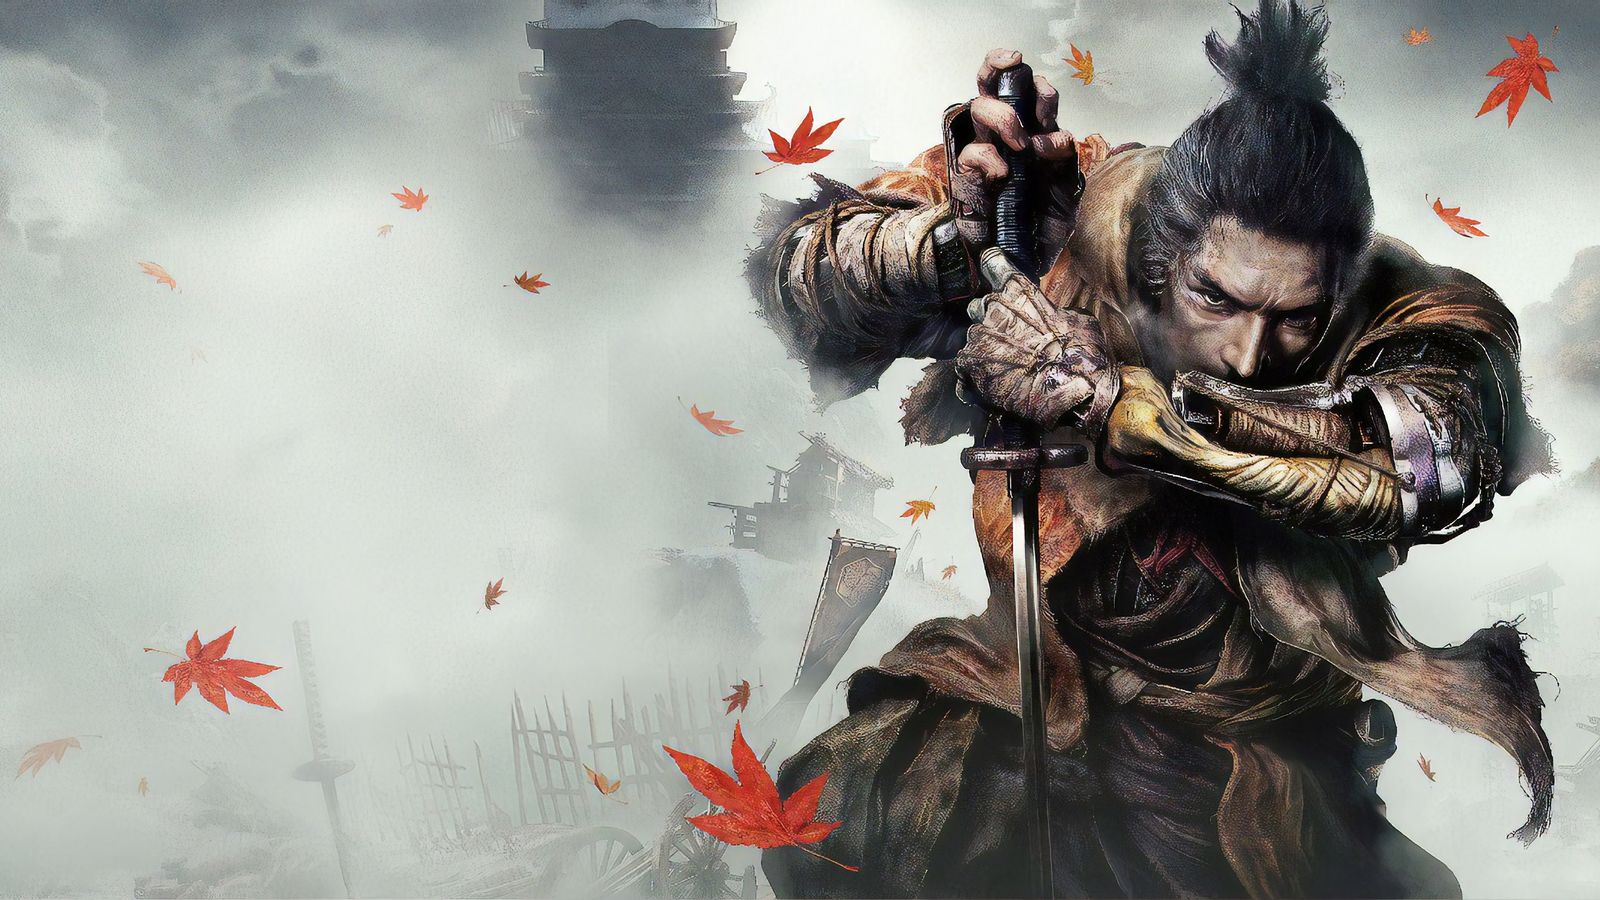 Sekiro: Shadows Die Twice – игра года по версии The Game Awards 2019